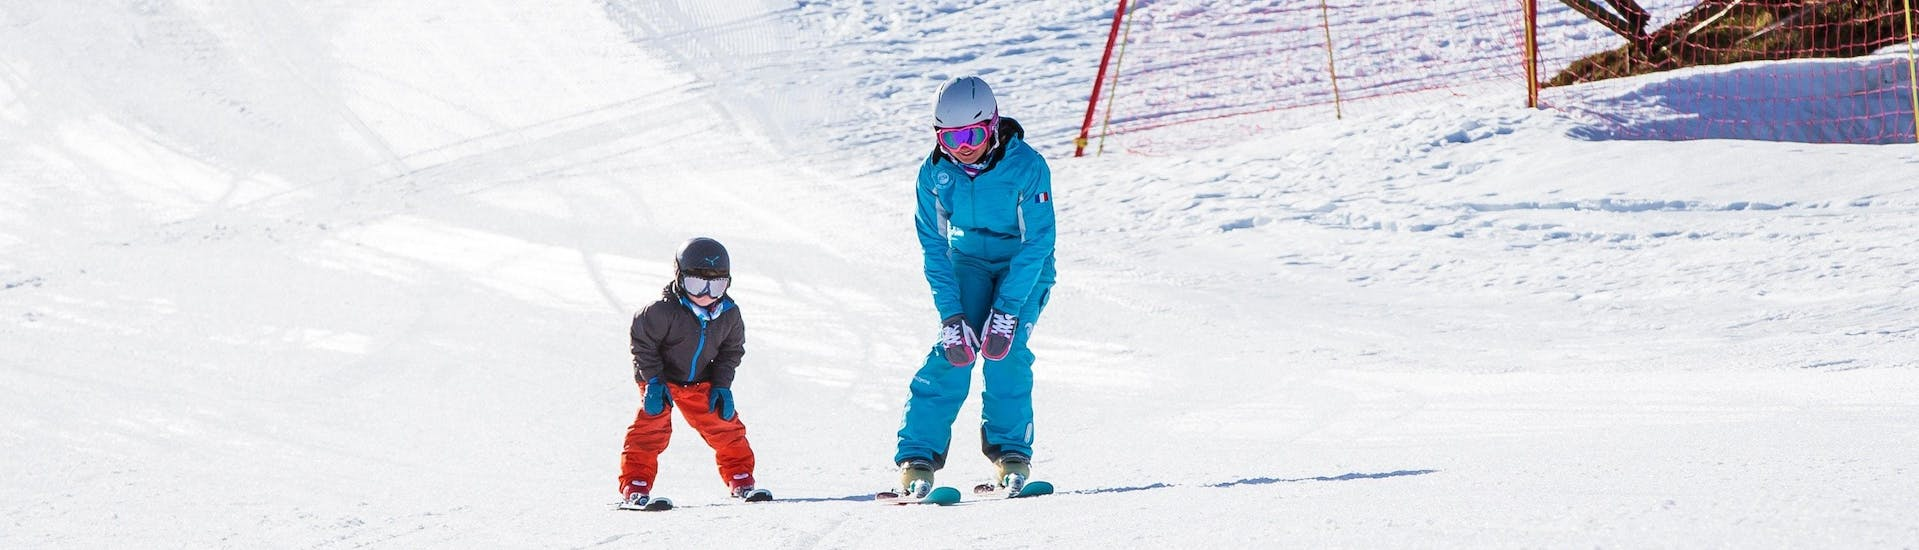 A ski instructor from the ski school ESI Ski Family in Risoul is skiing alongside a child during their Private Ski Lessons for Kids of All Levels - Morning.